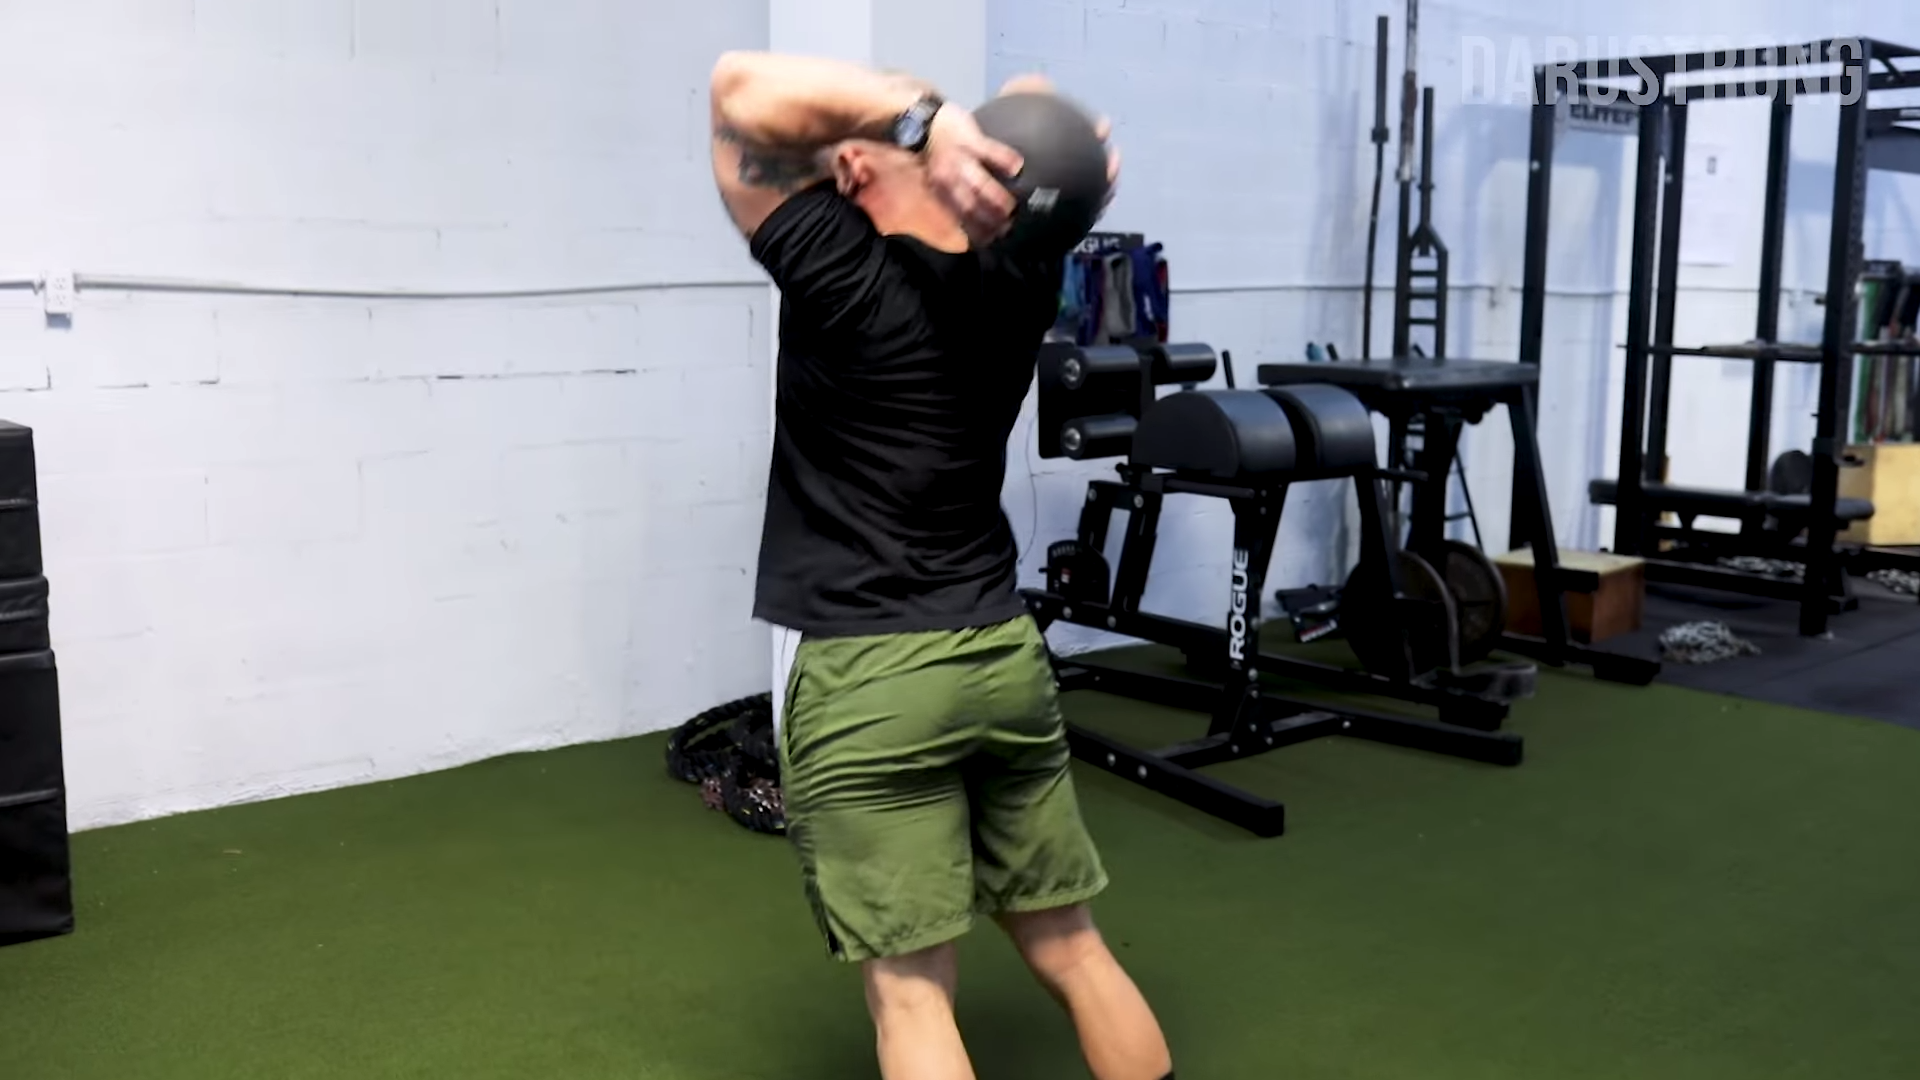 Increase Your Knockout Power With These 6 Medicine Ball Exercises 1